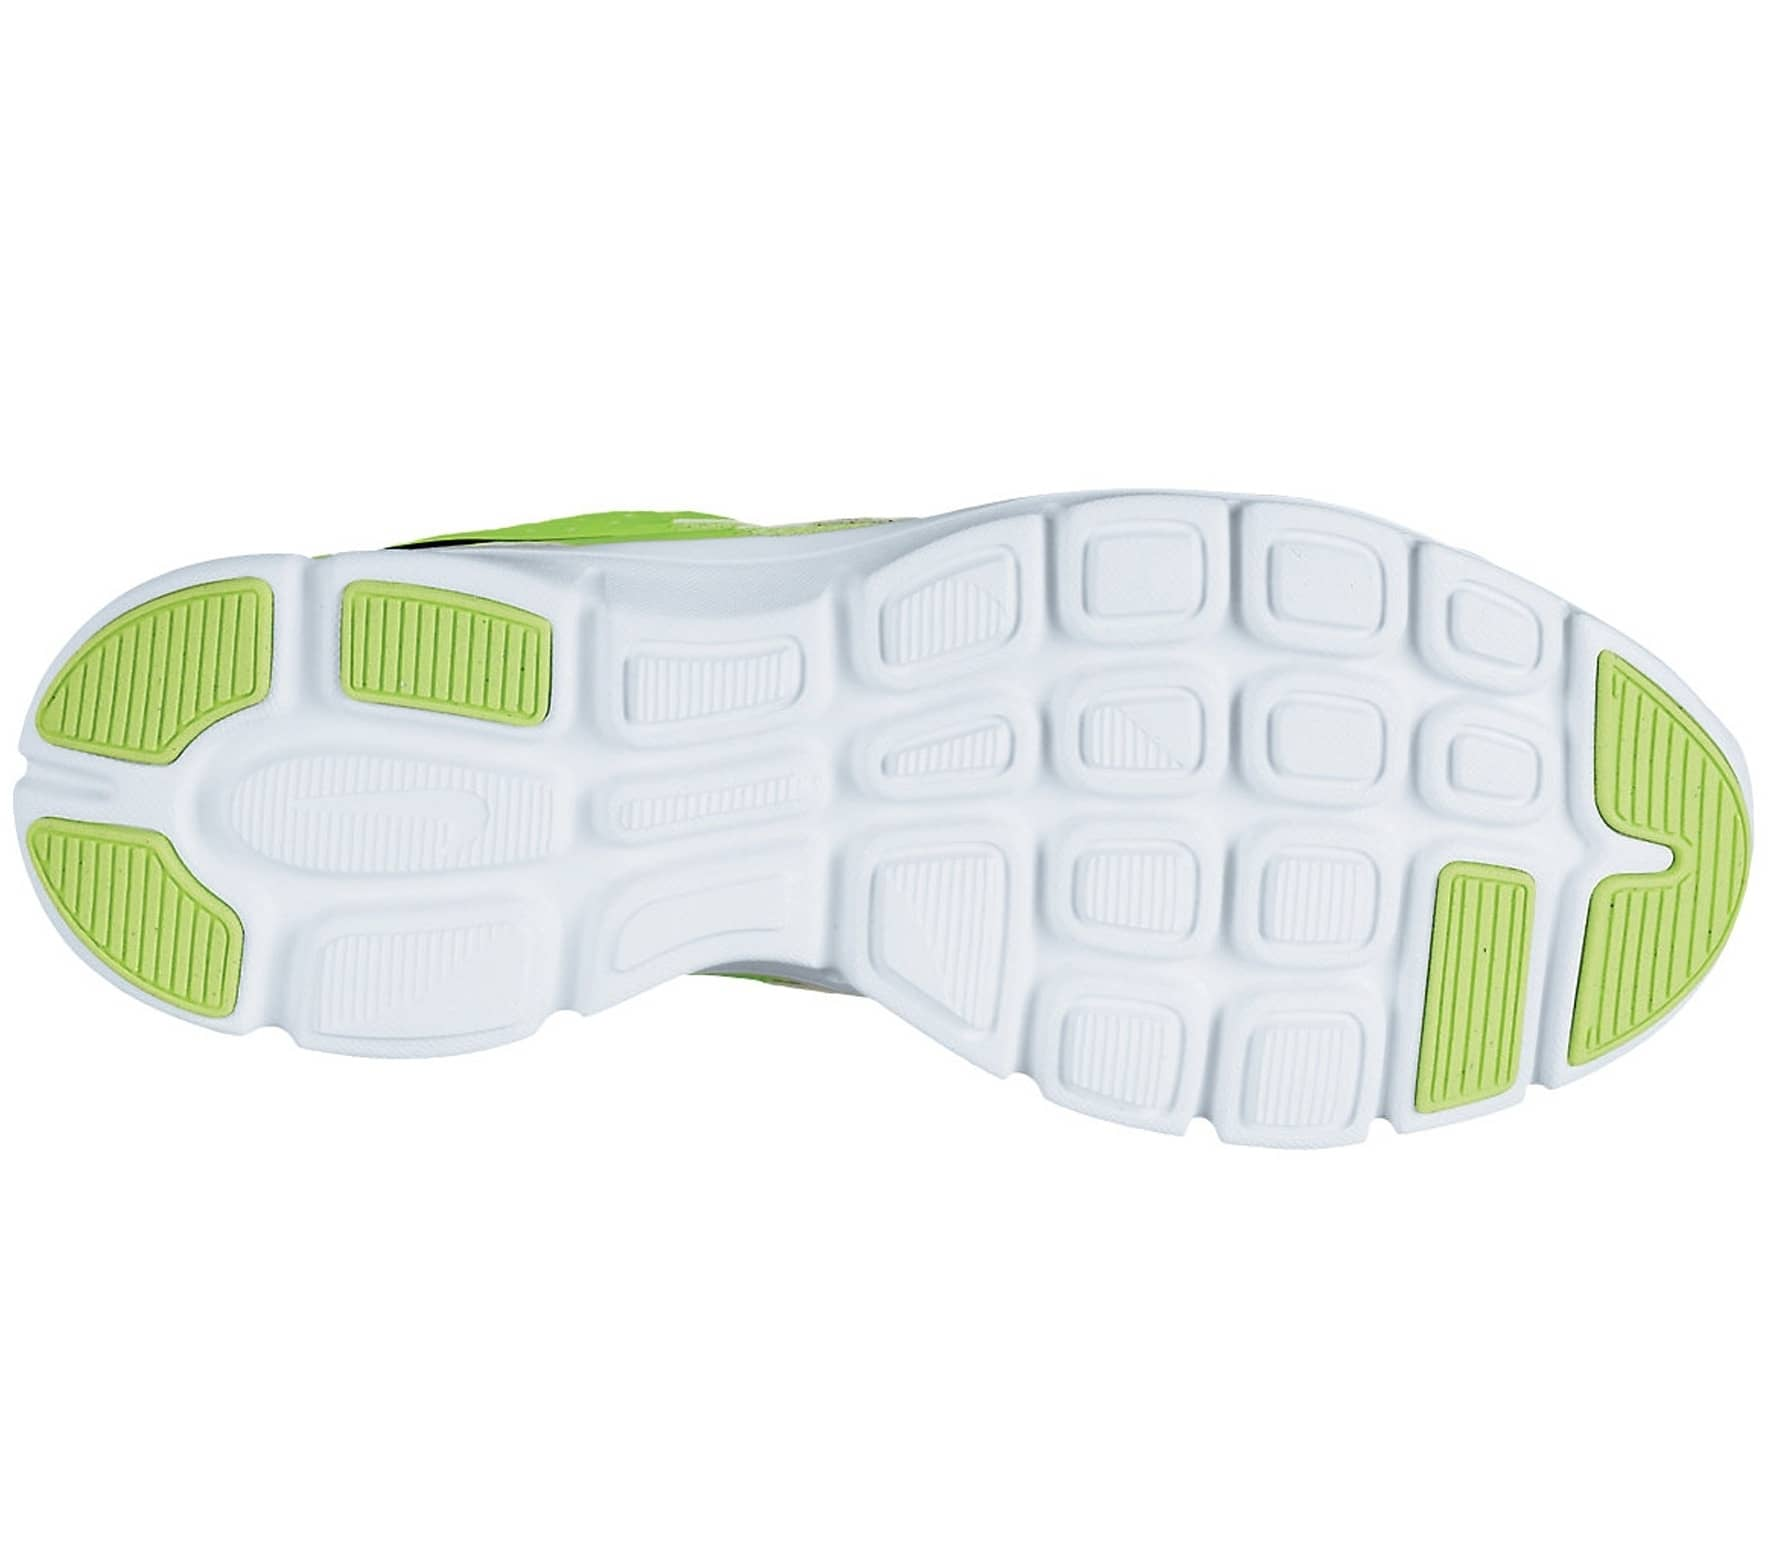 de3835abbed Nike Flex Experience Rn 2 Msl Running Shoes Review - Style Guru ...